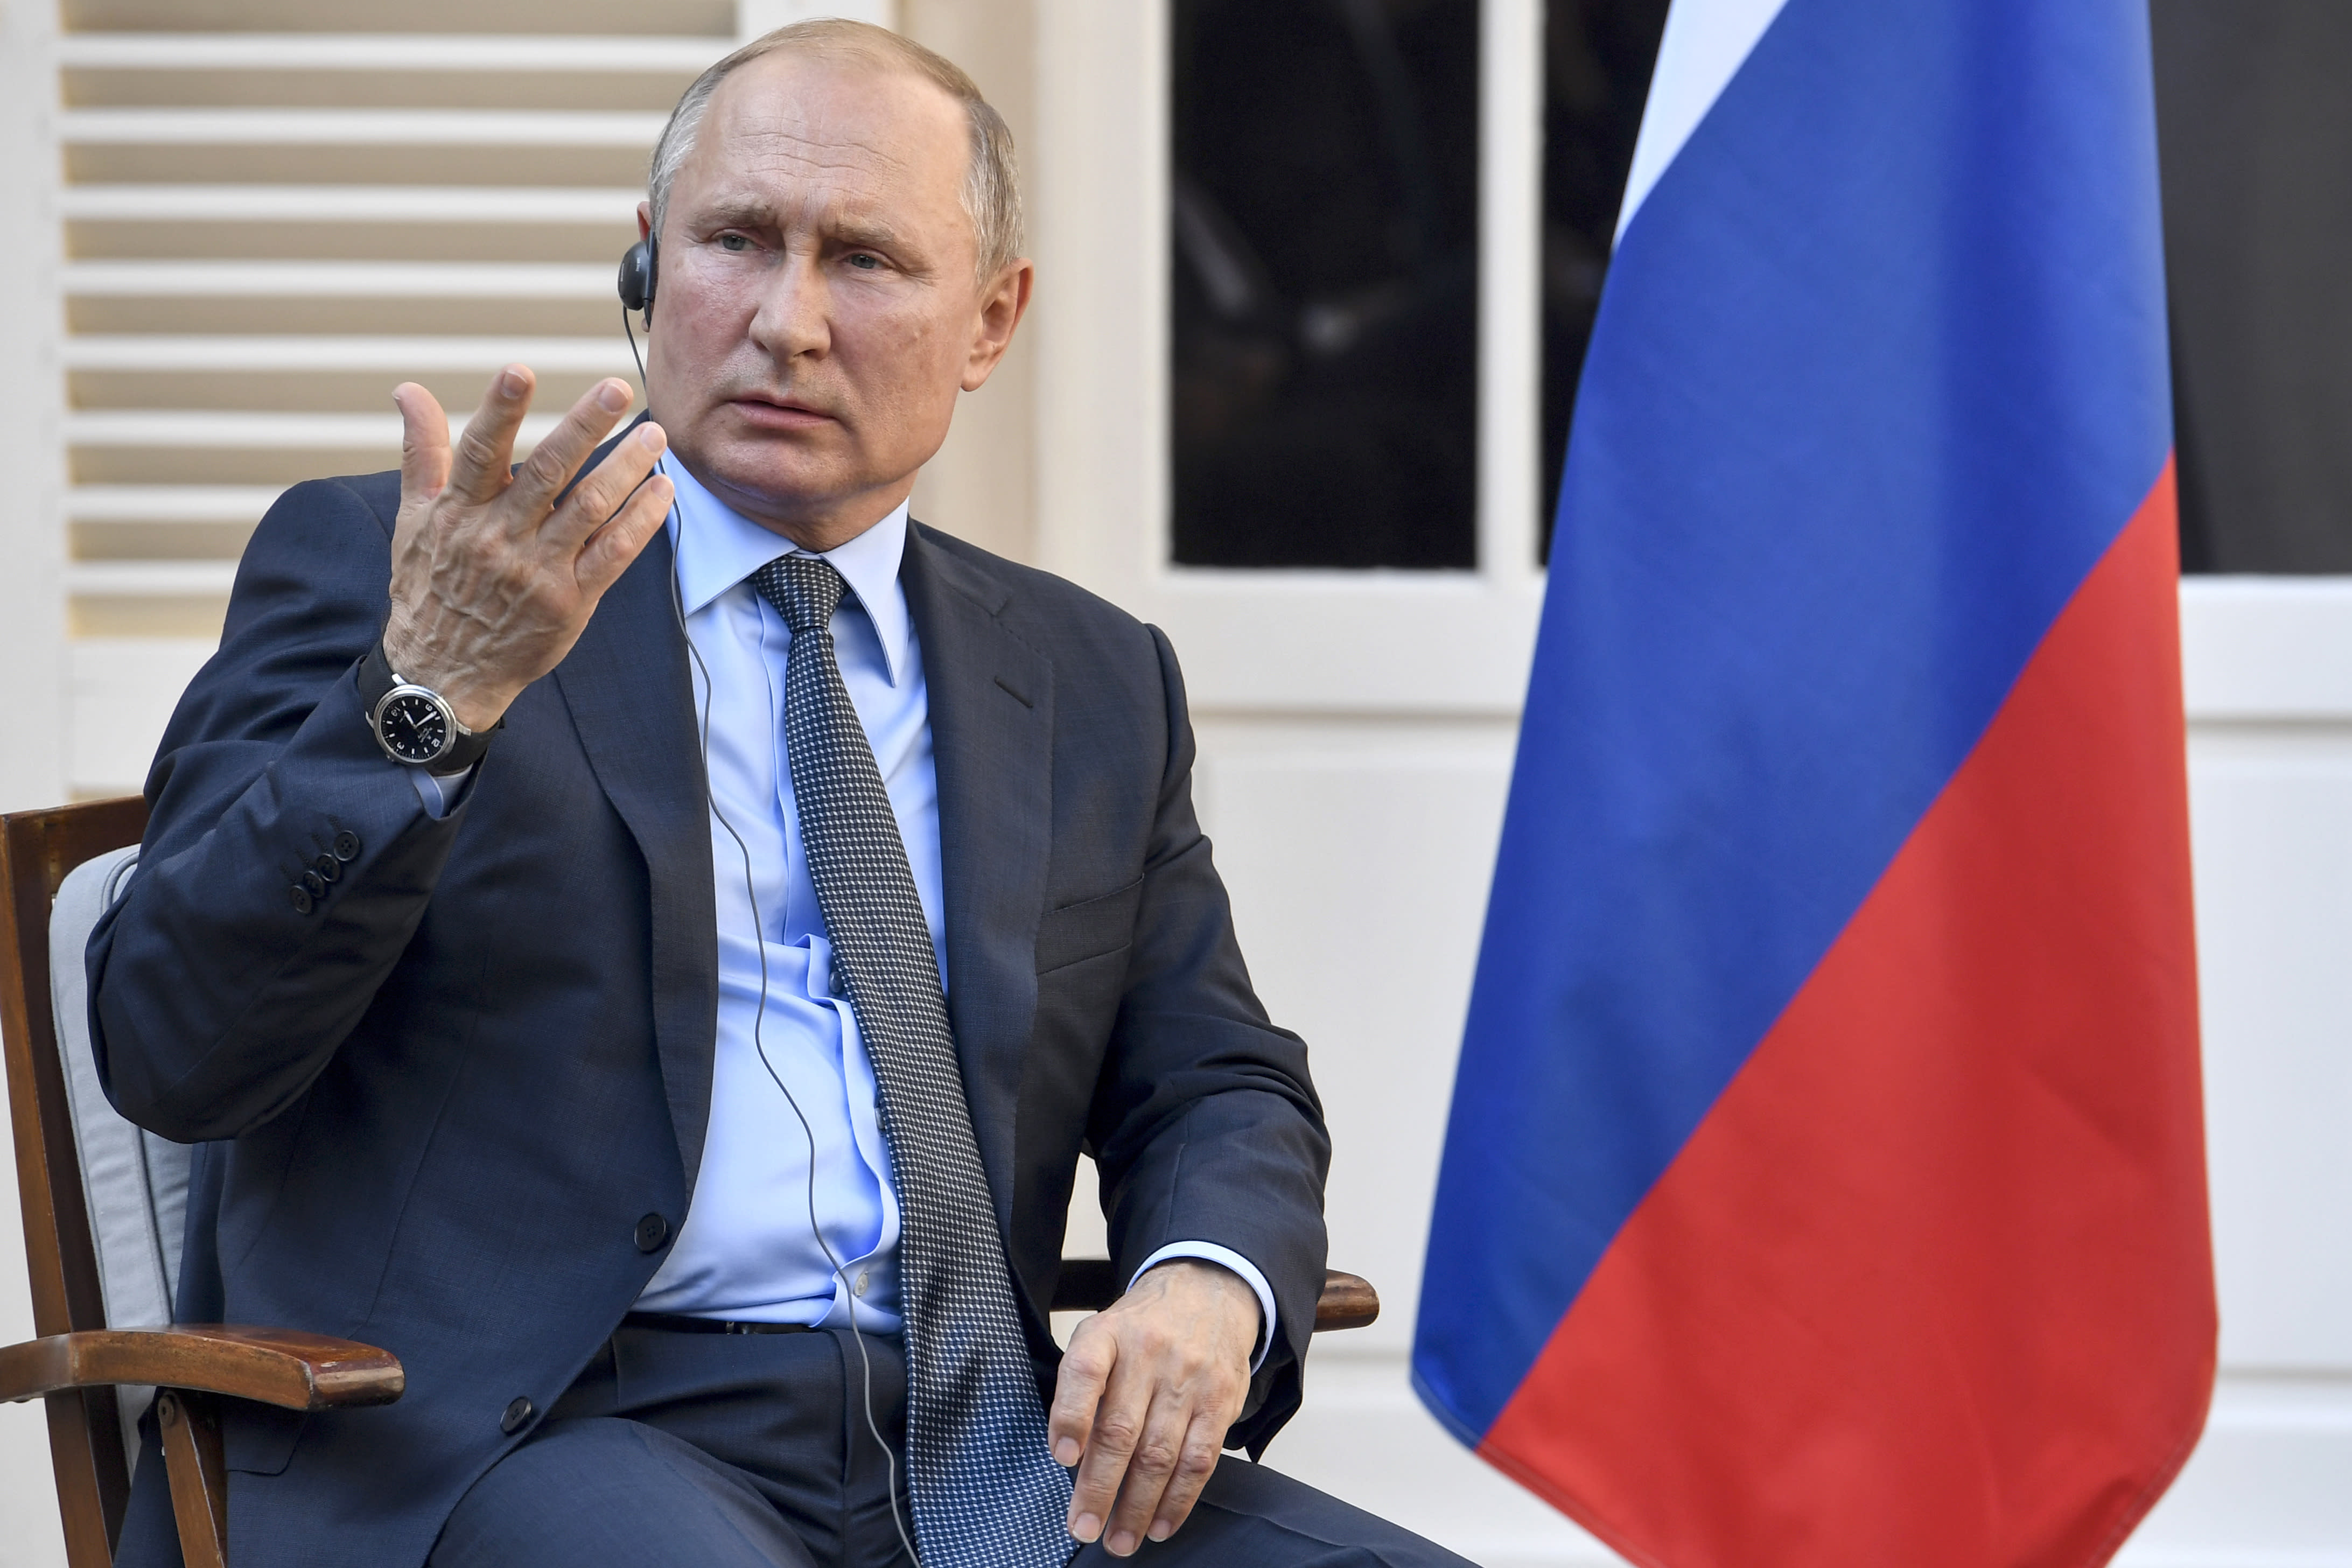 Macron Tells Putin Ceasefire in Syria's Idlib Must be Respected